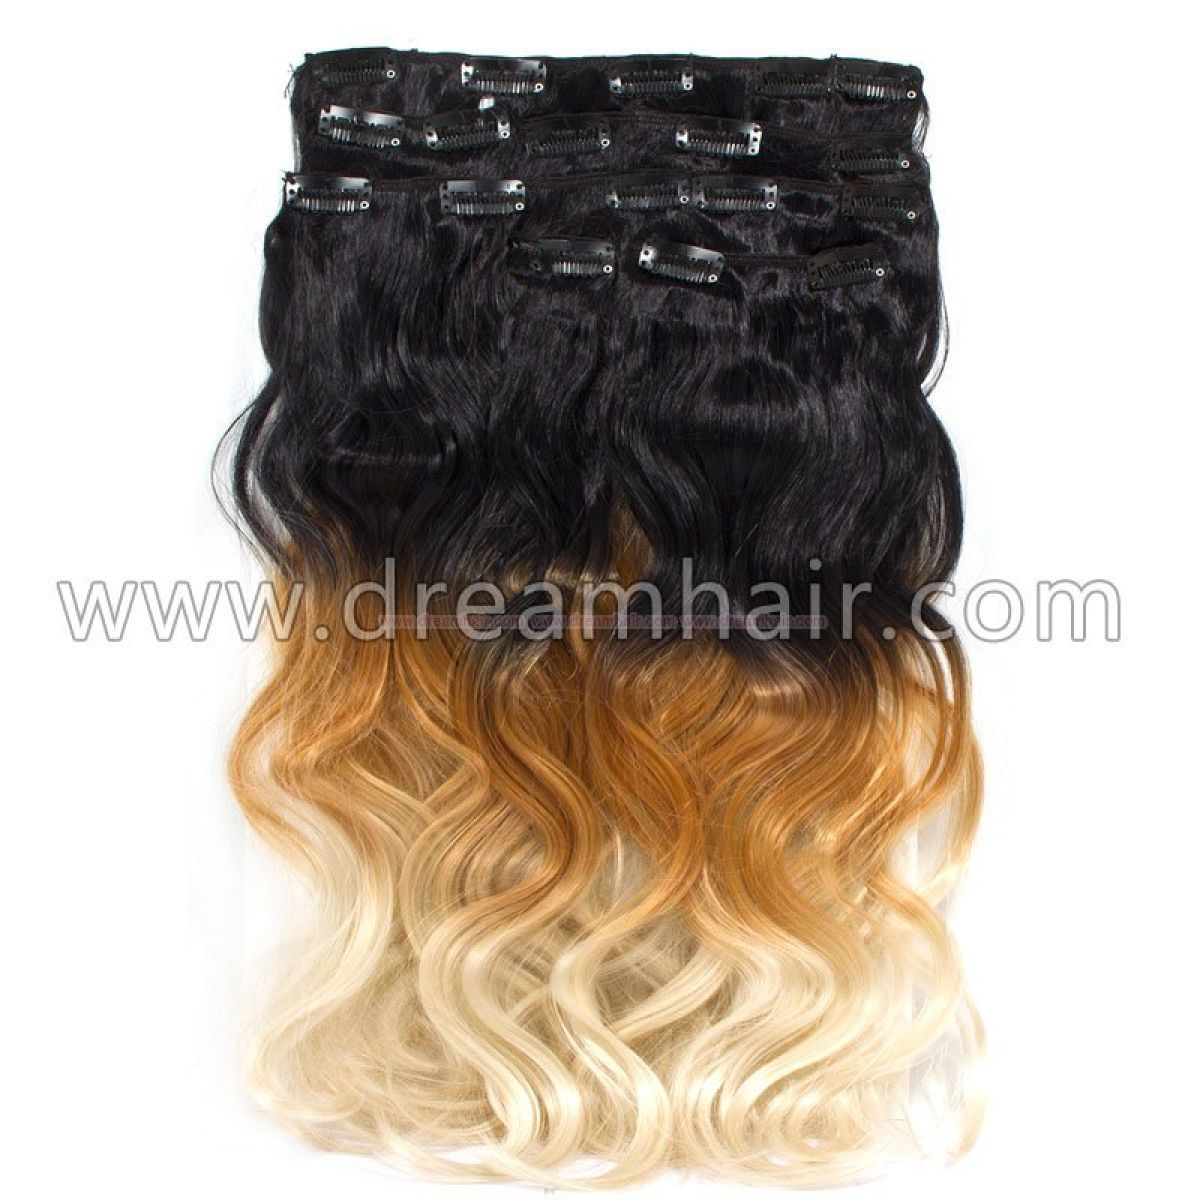 Clip In Ombre 8 Pcs 50cm160g 1b27613 Hair Extensions Outlet